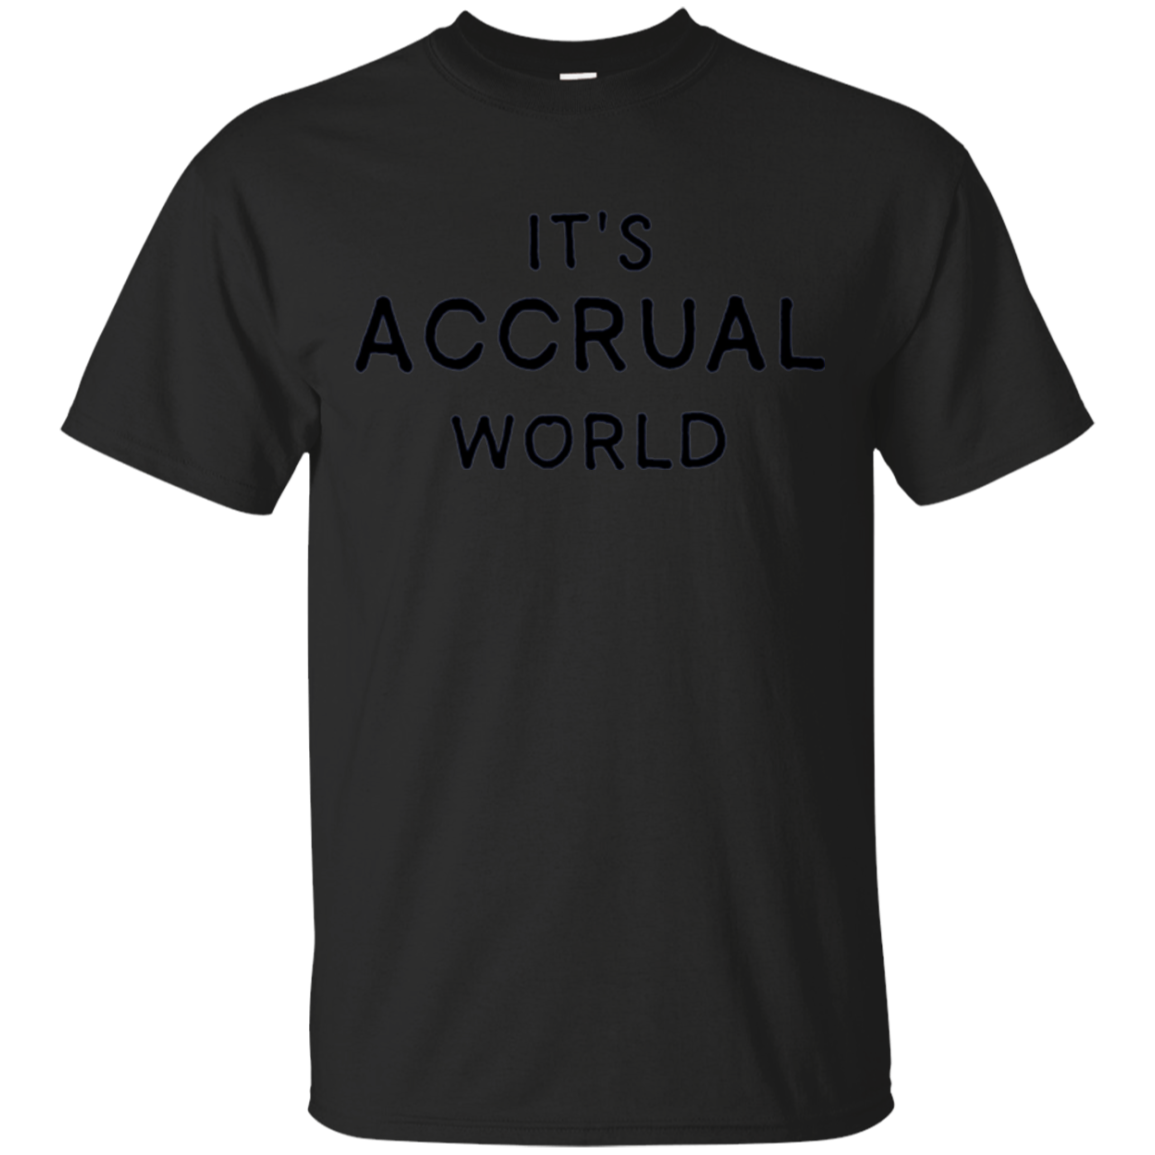 Its Accrual World Shirt, Accounting, Accountant Gifts